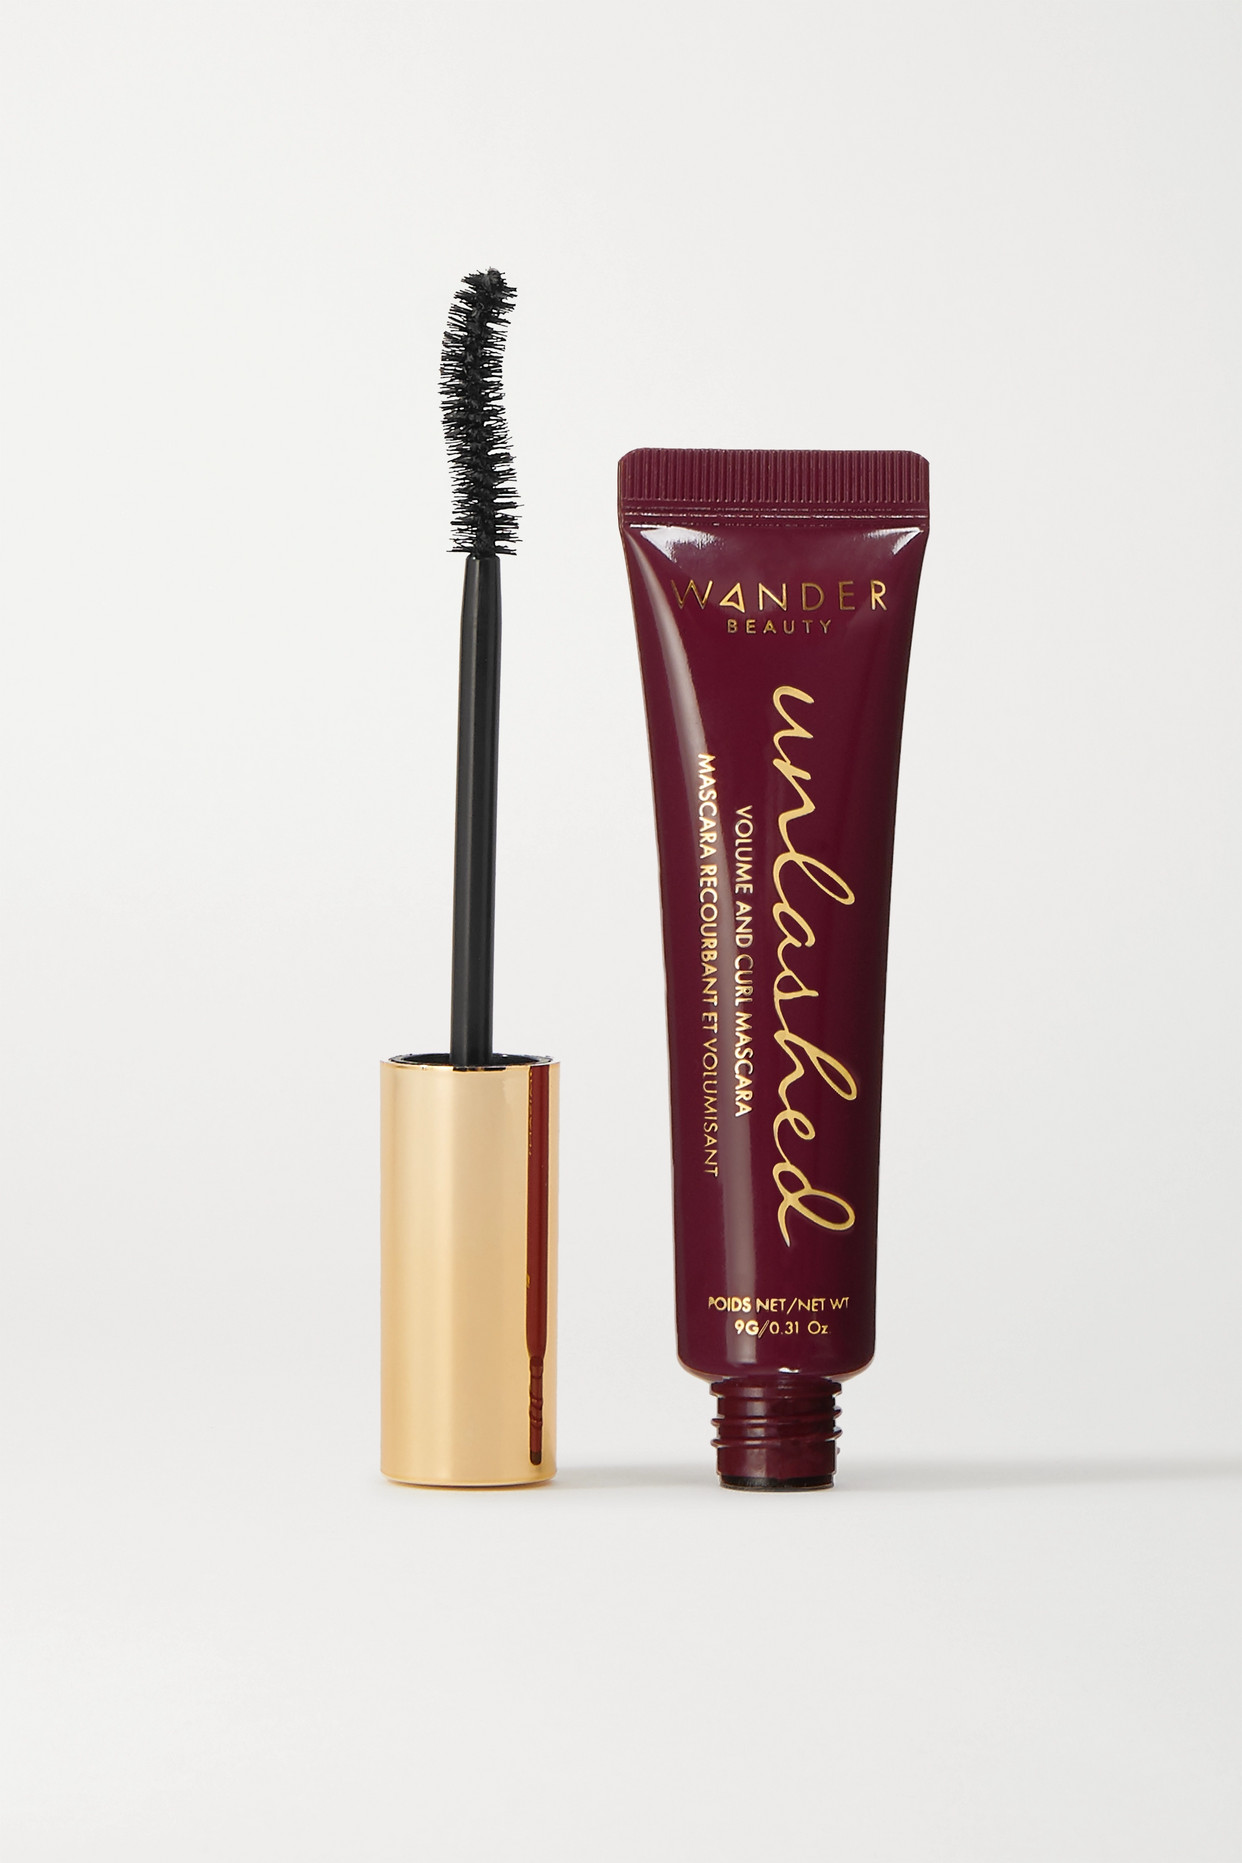 WANDER BEAUTY - Unlashed Volume And Curl Mascara - Tarmac - Black - one size